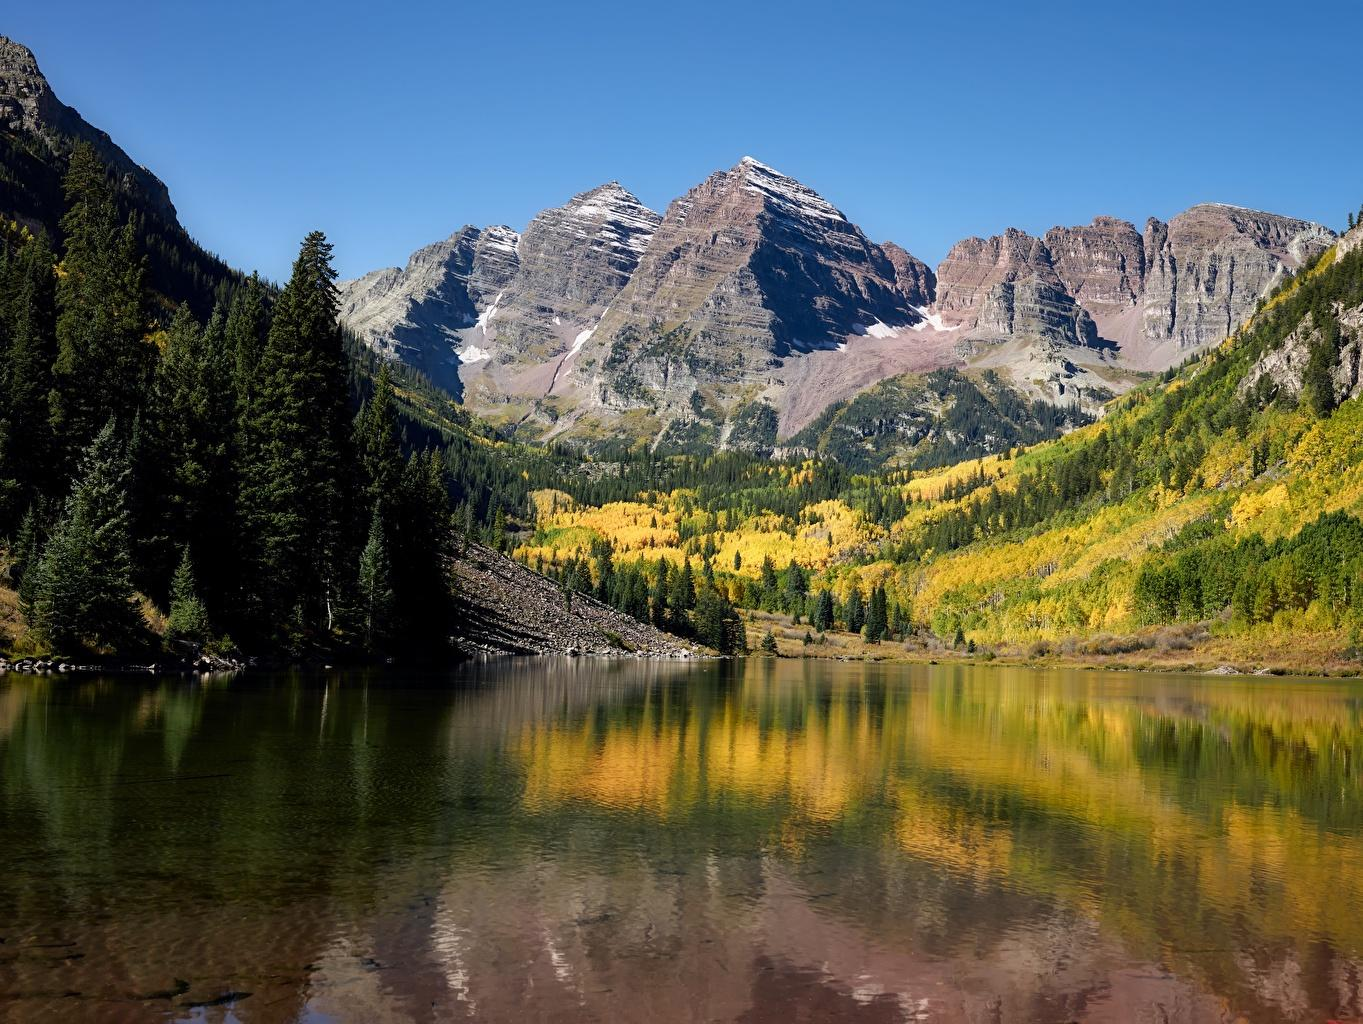 Image USA Maroon lake, Rocky Mountains, Colorado Rock